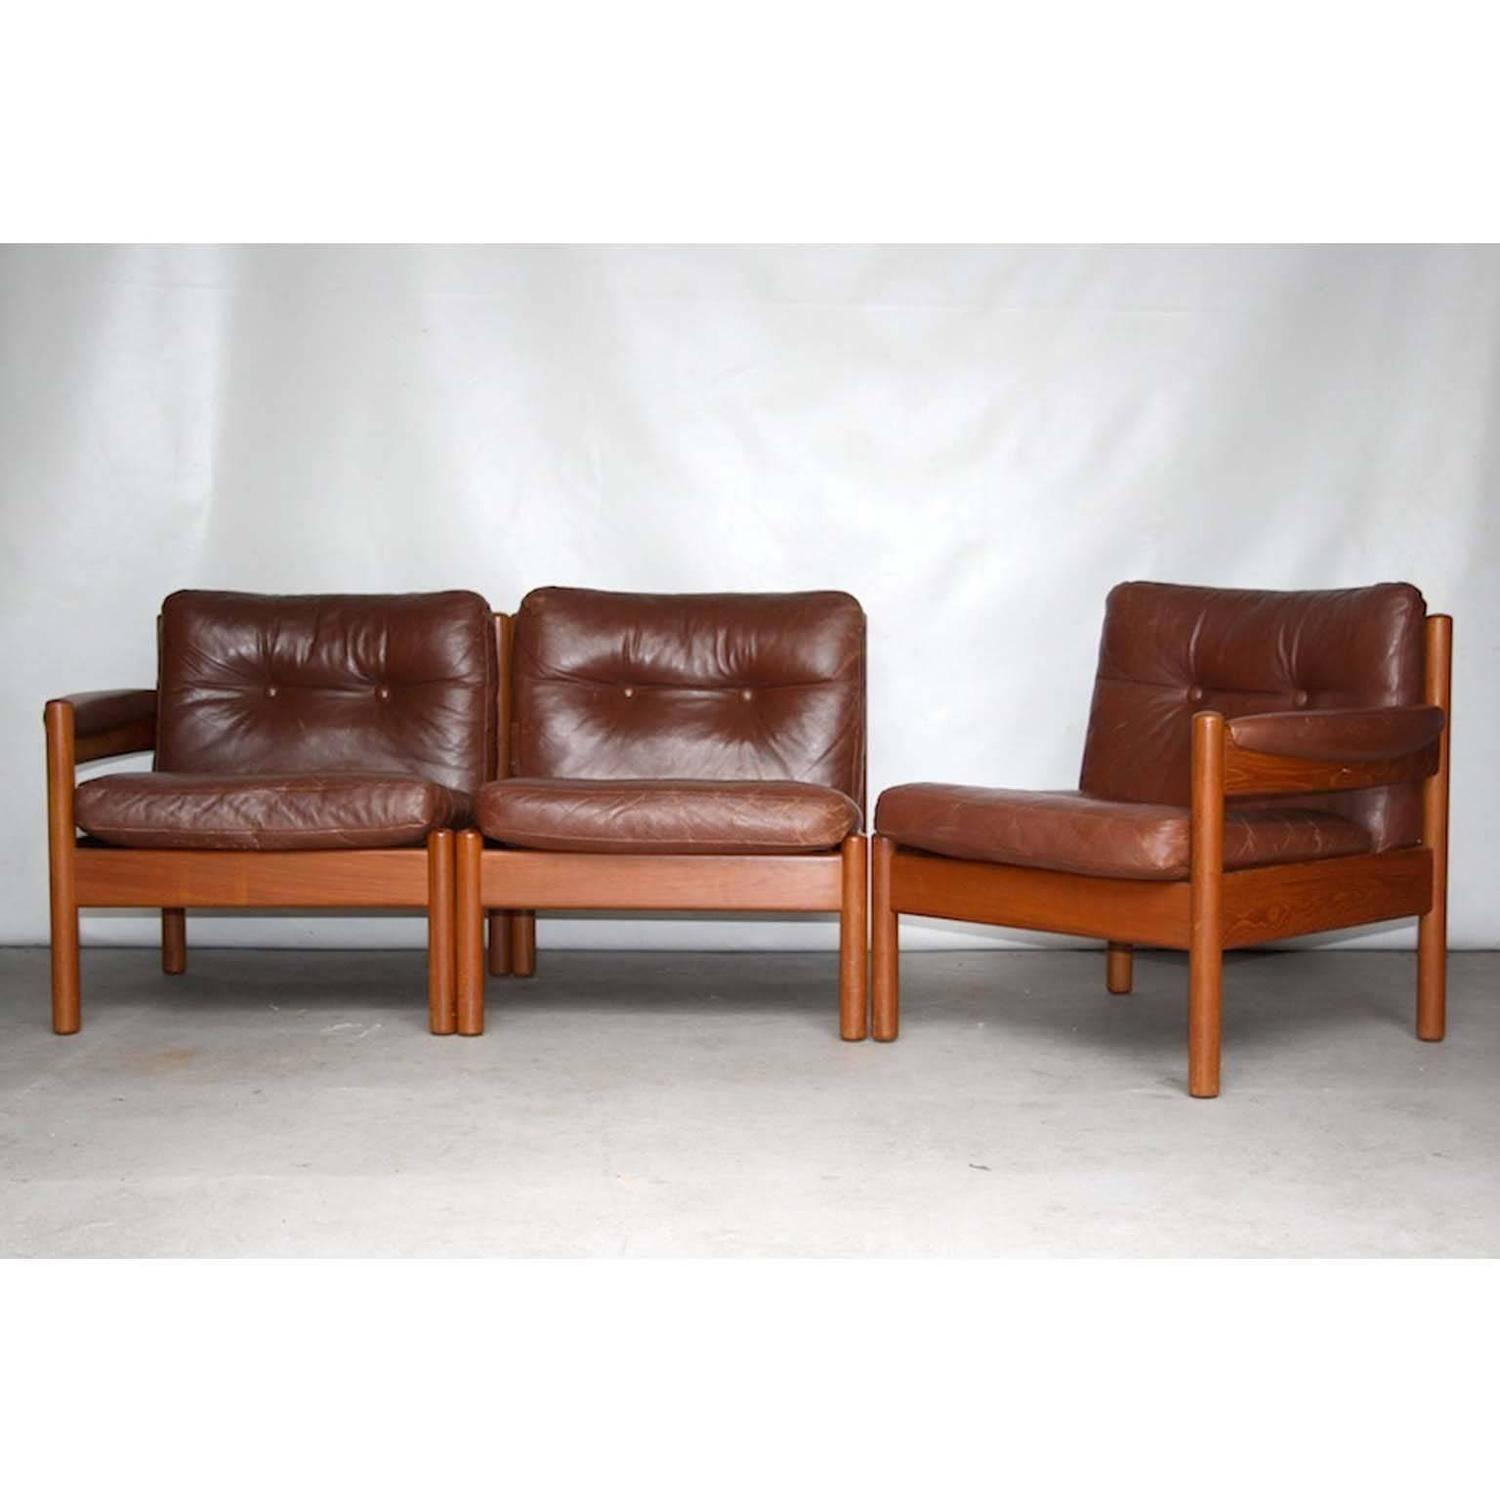 Lodge Or Cottage Style Mid Century Scandinavian Leather Modular Sofa 1960s For Sale At 1stdibs